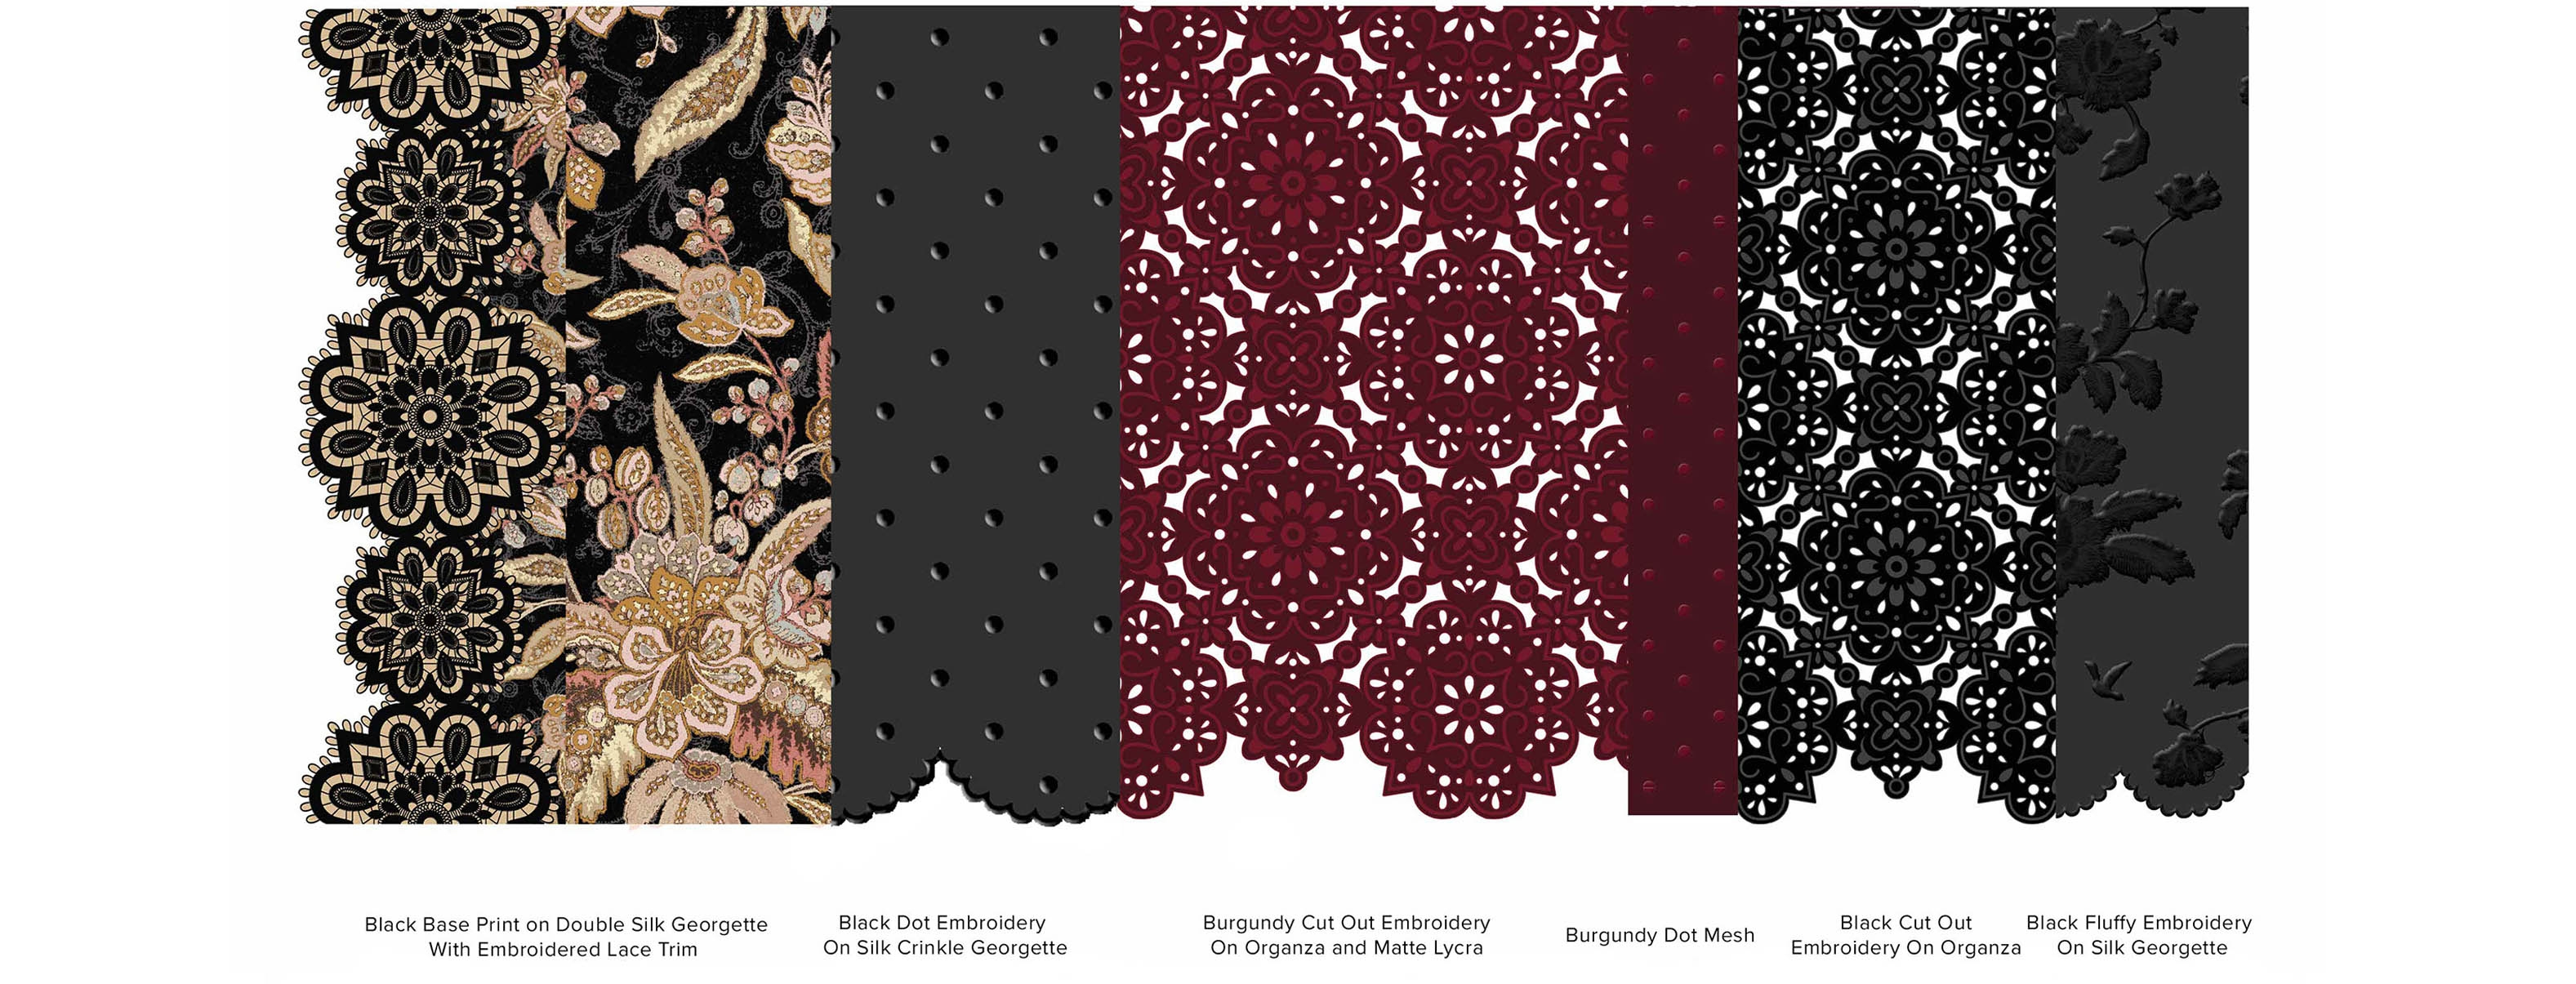 Swatches of the darker coloured fabrications used in the capsule collection